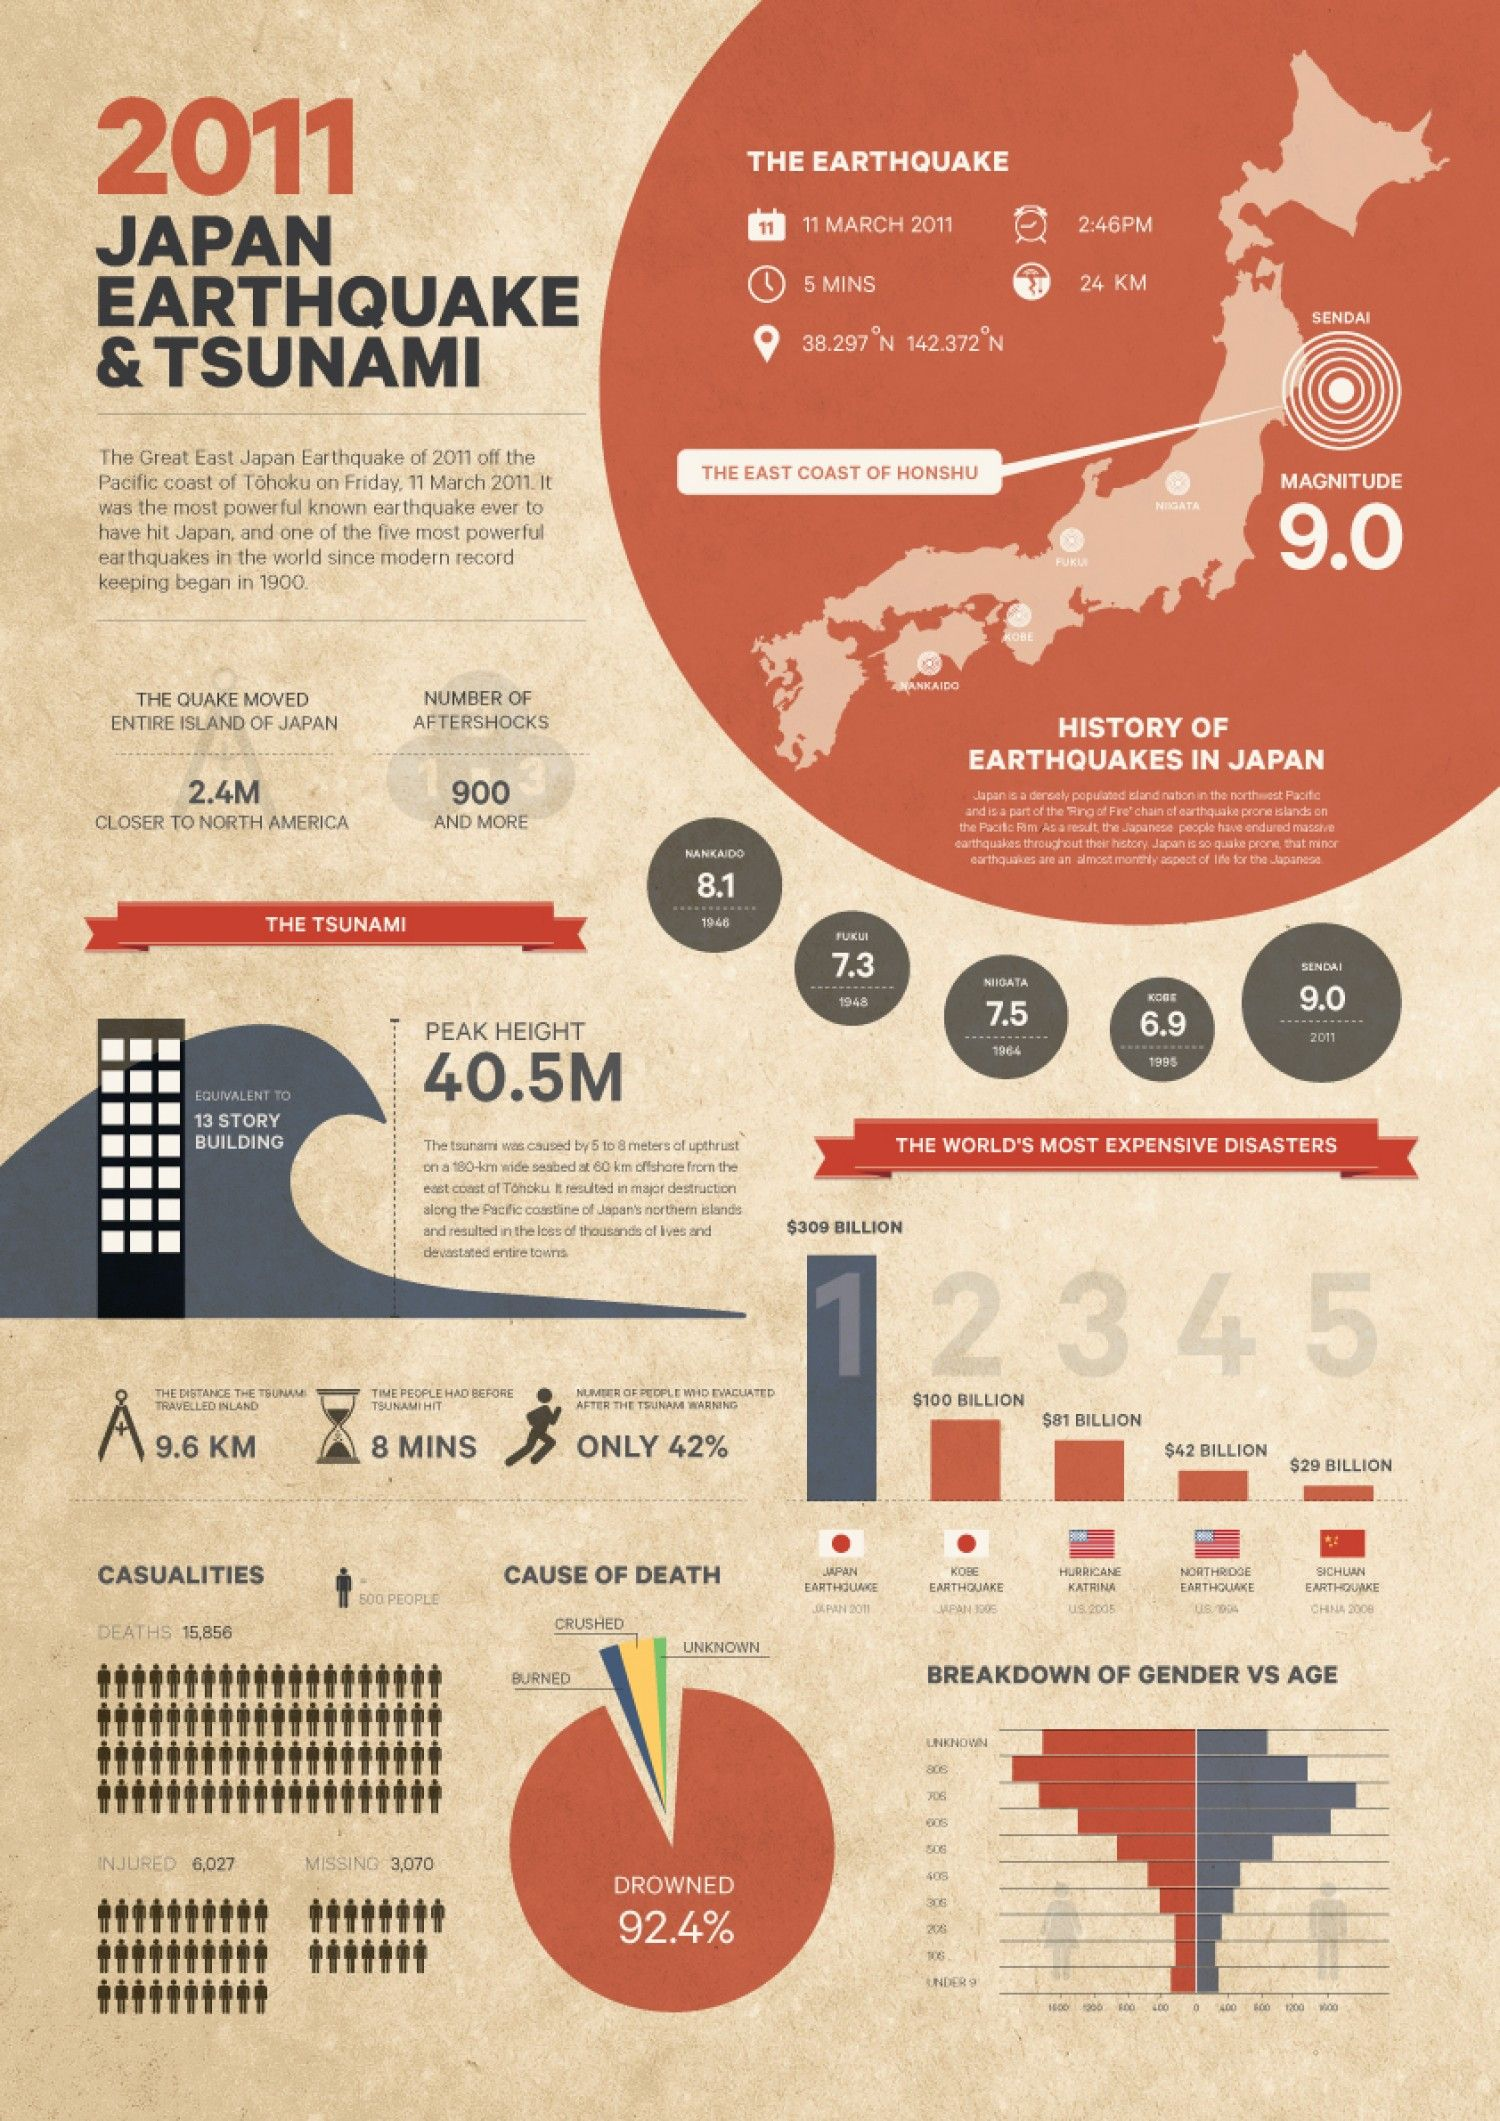 Japan Earthquake Infographic | Useful Classroom Images ...